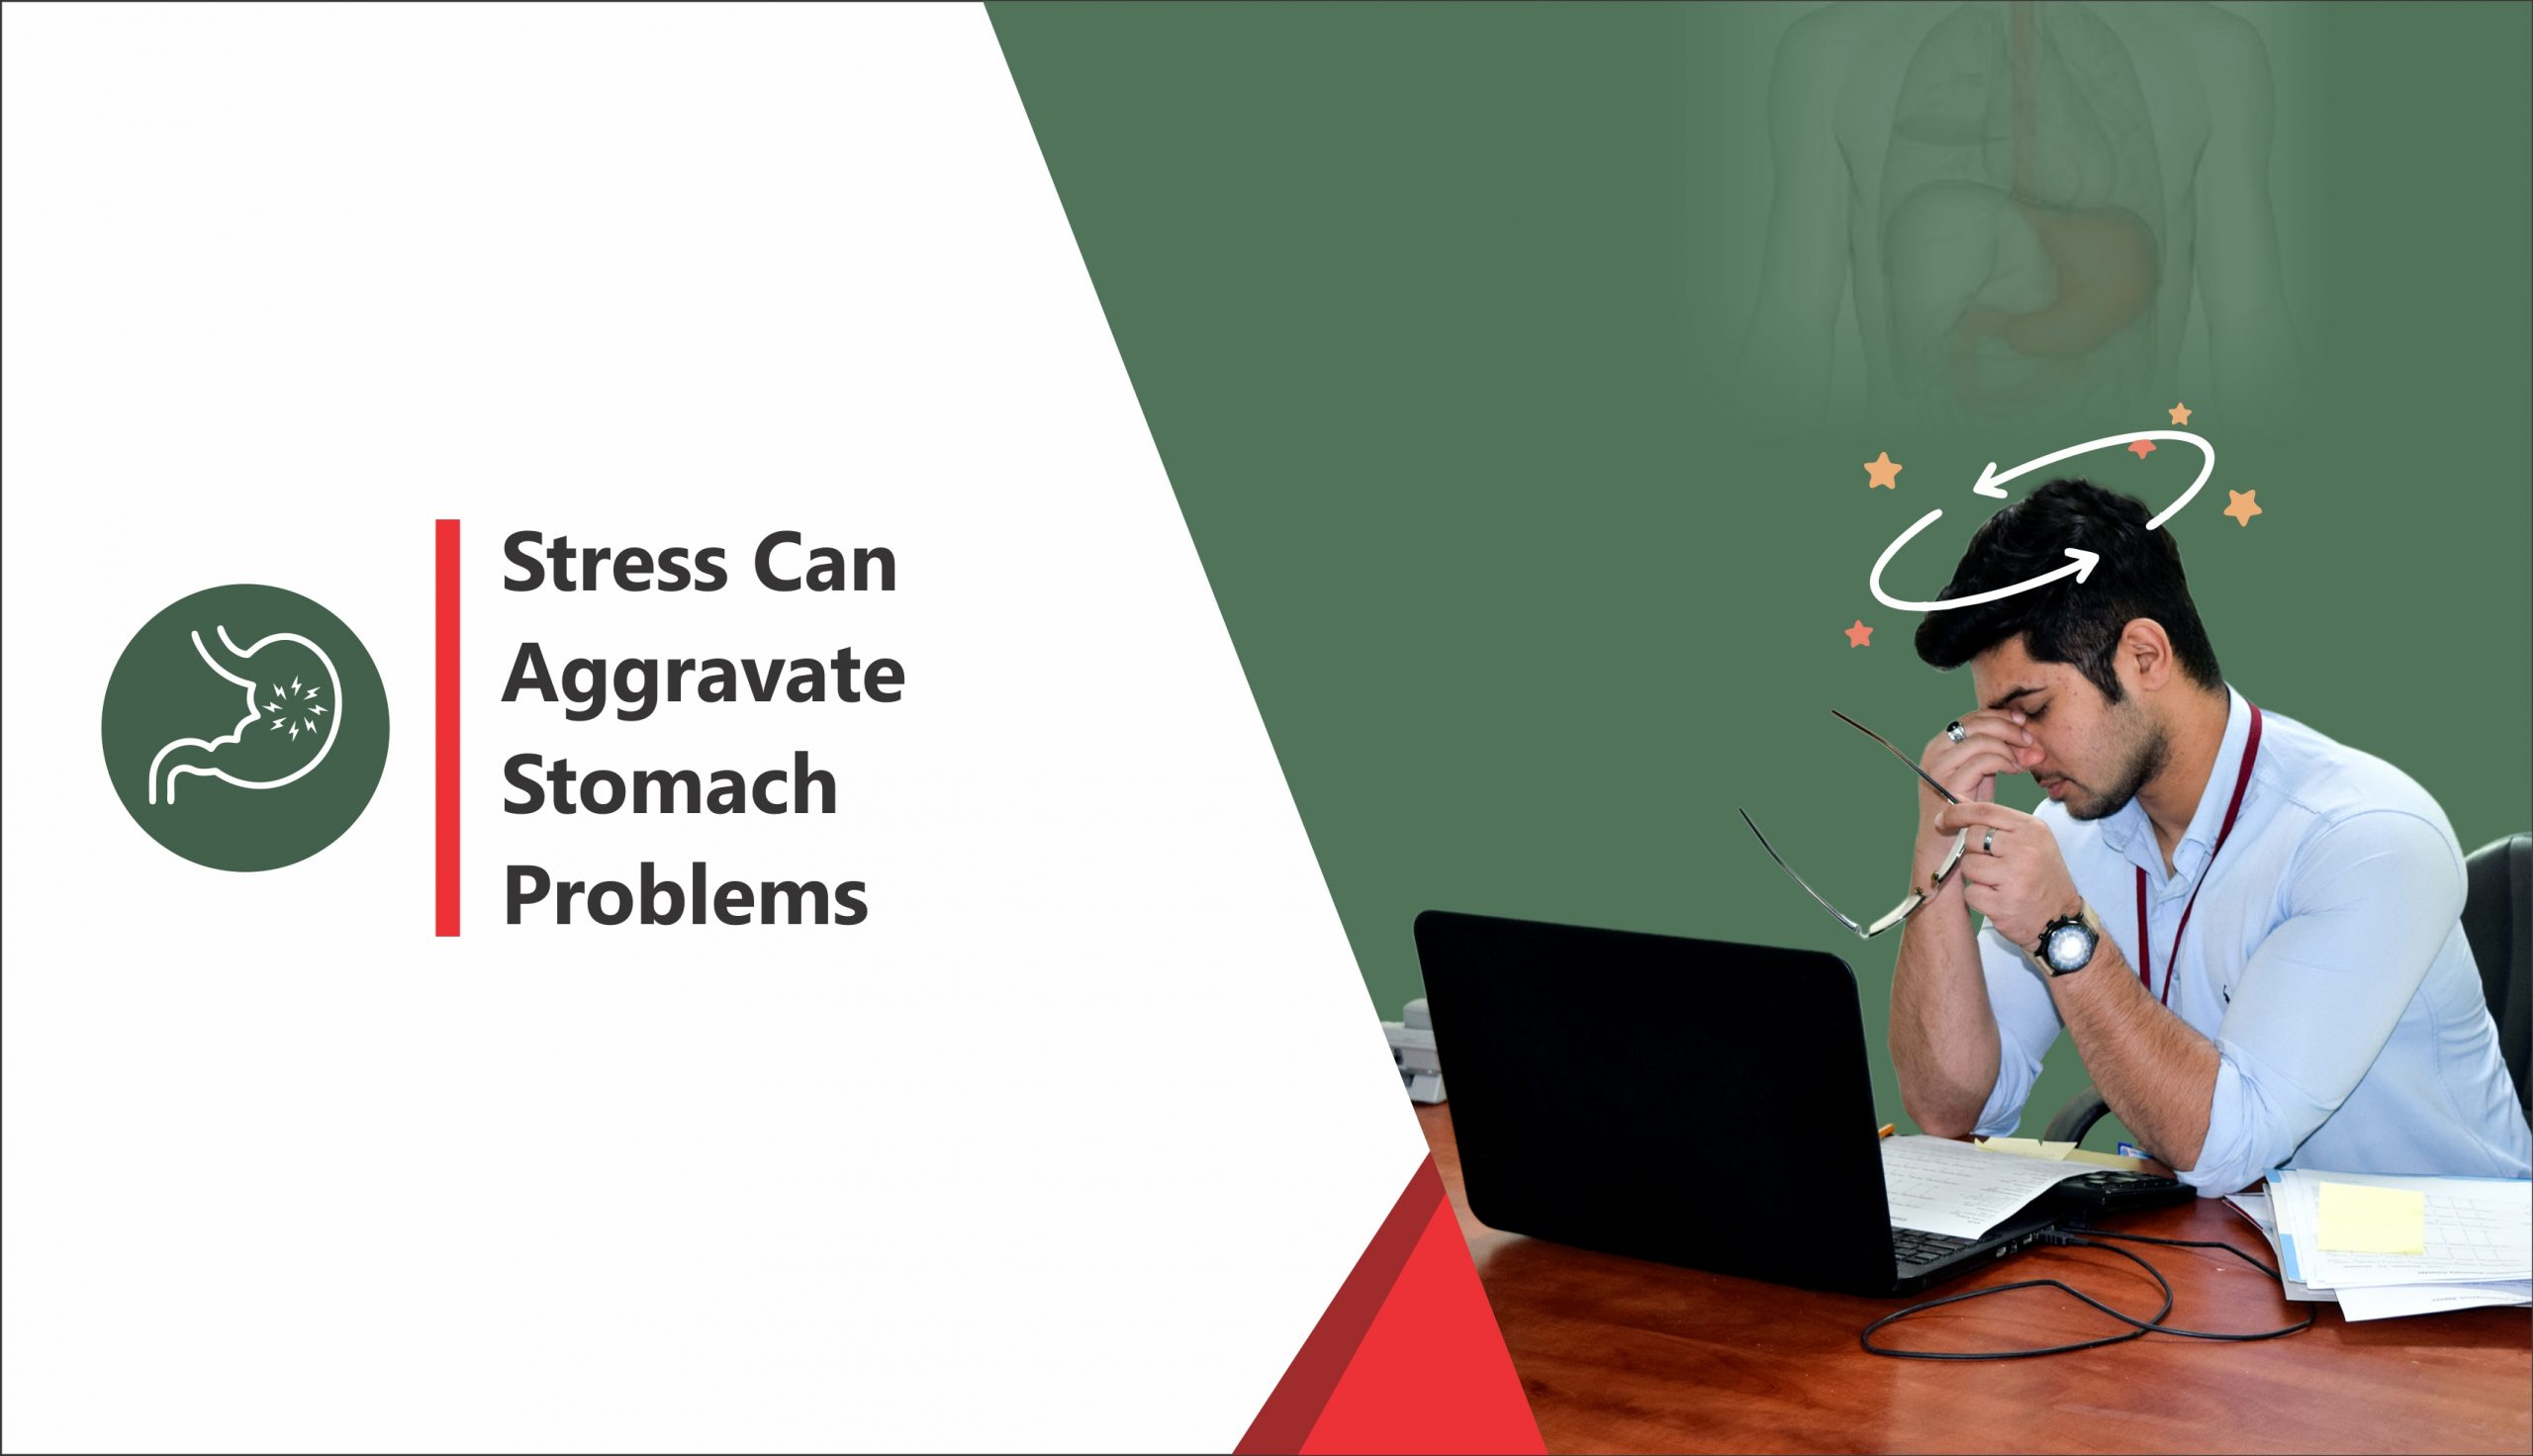 Stress can aggravate stomach problems